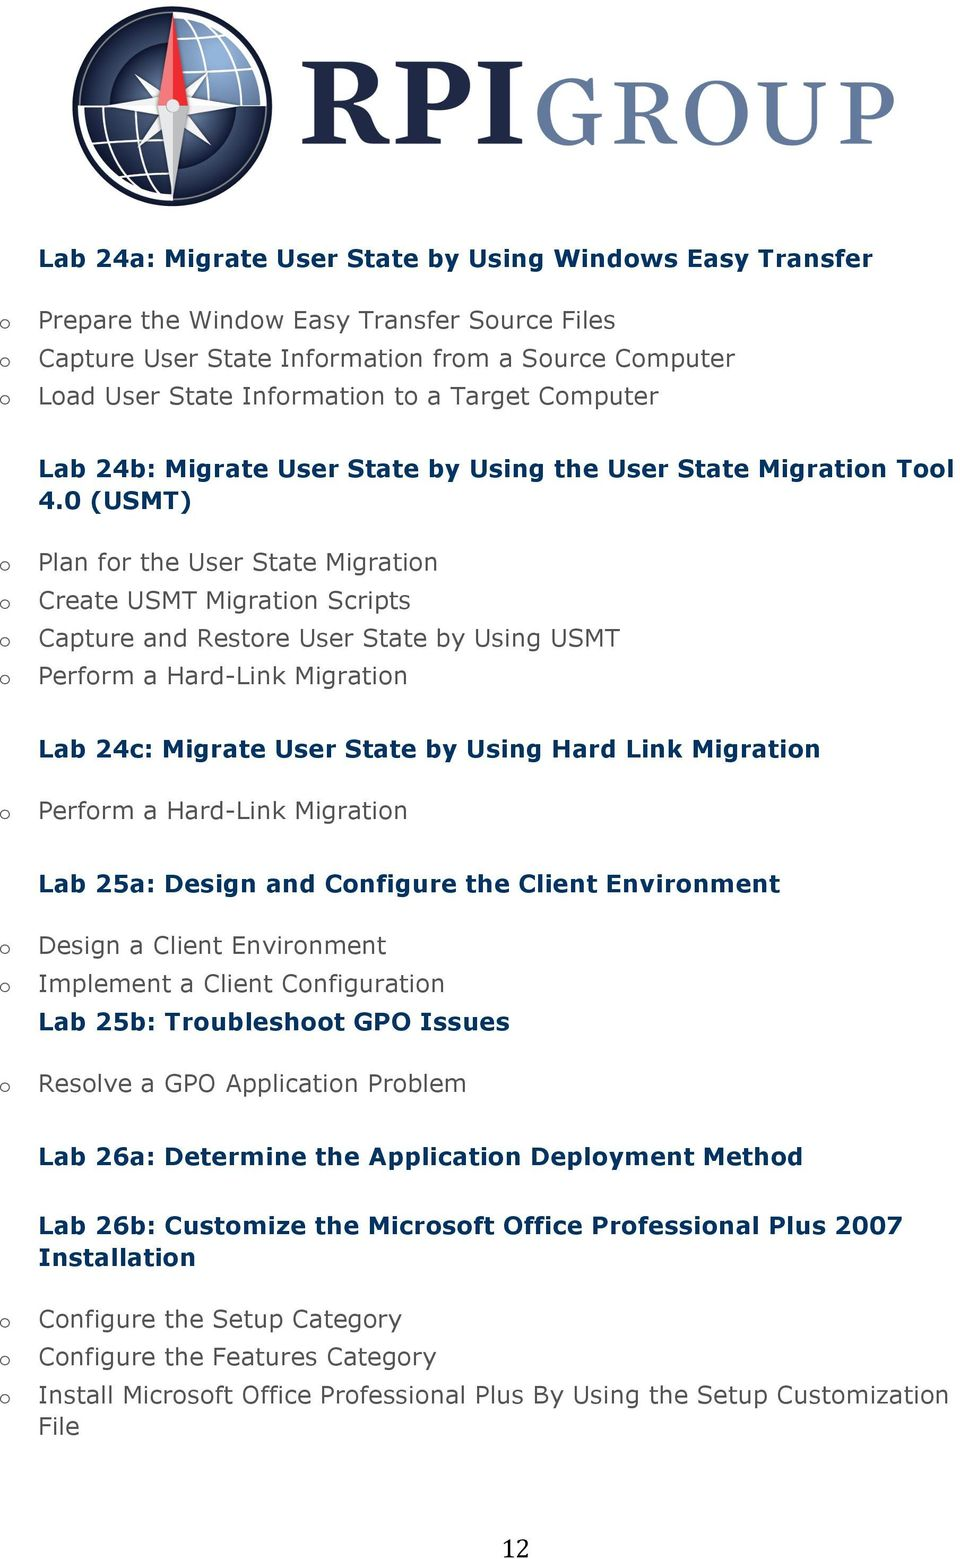 0 (USMT) Plan fr the User State Migratin Create USMT Migratin Scripts Capture and Restre User State by Using USMT Perfrm a Hard-Link Migratin Lab 24c: Migrate User State by Using Hard Link Migratin